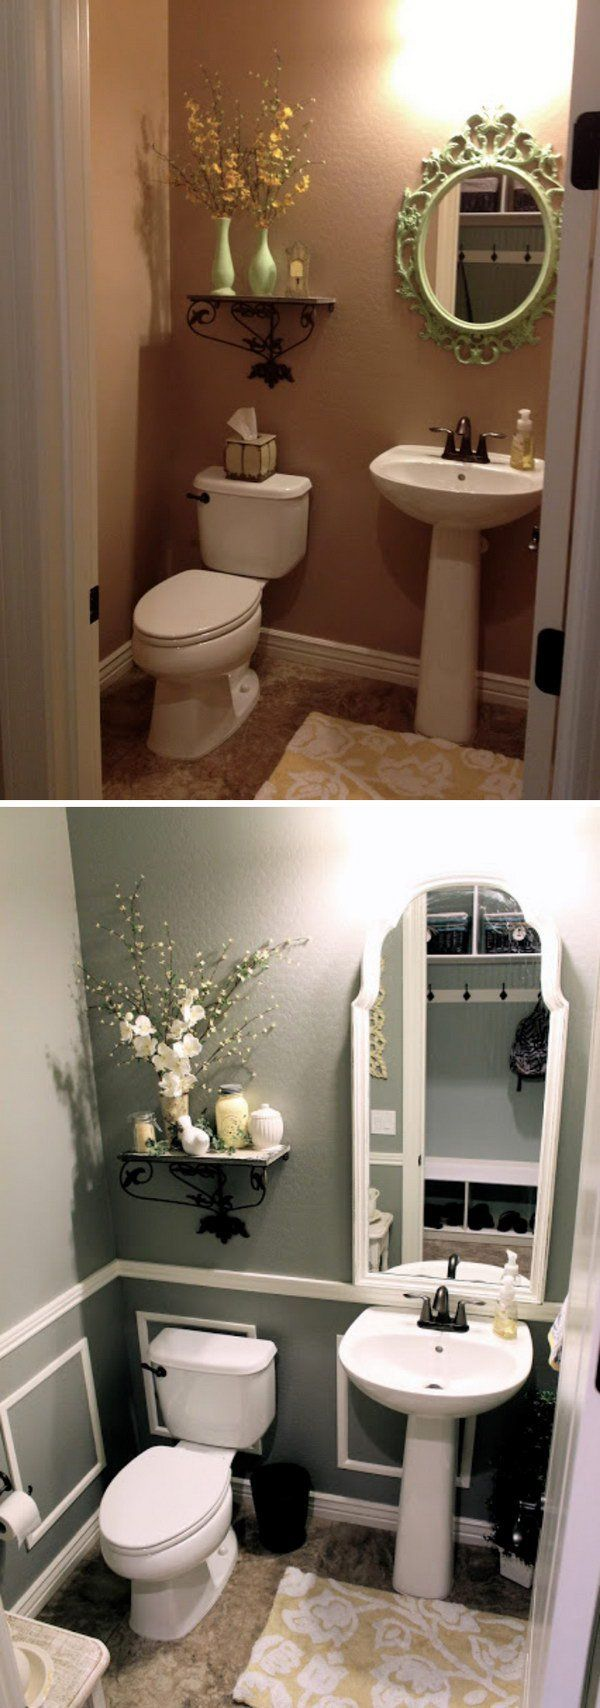 best 25 small bathroom makeovers ideas only on pinterest small 37 small bathroom makeovers